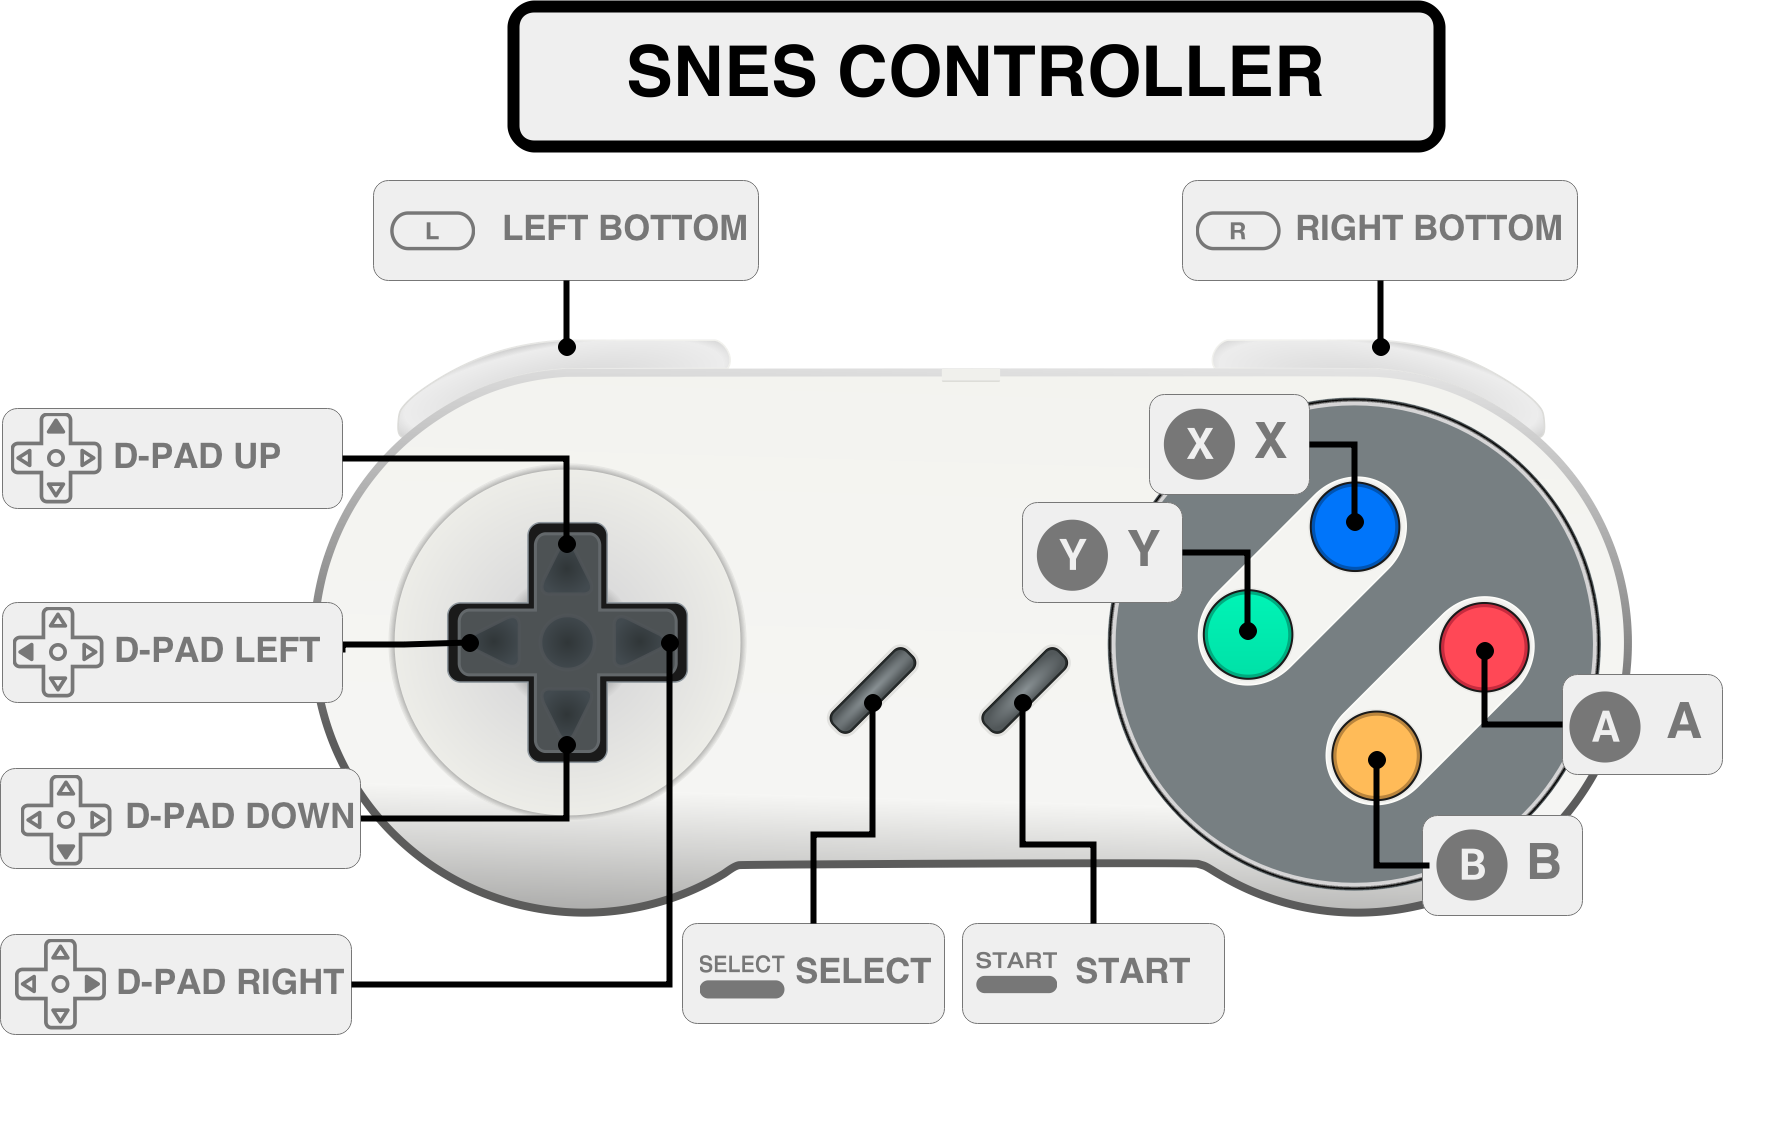 printable wiring diagram symbols with Raspberry Pi Xbox Controller on Schematic Symbols Chart Answers further 2JZ GTE 20JZS147 20Aristo 20Engine 20Wiring further Printable Hd Ladder Diagrams additionally Electronic Schematic Template furthermore Open Symbol Font.